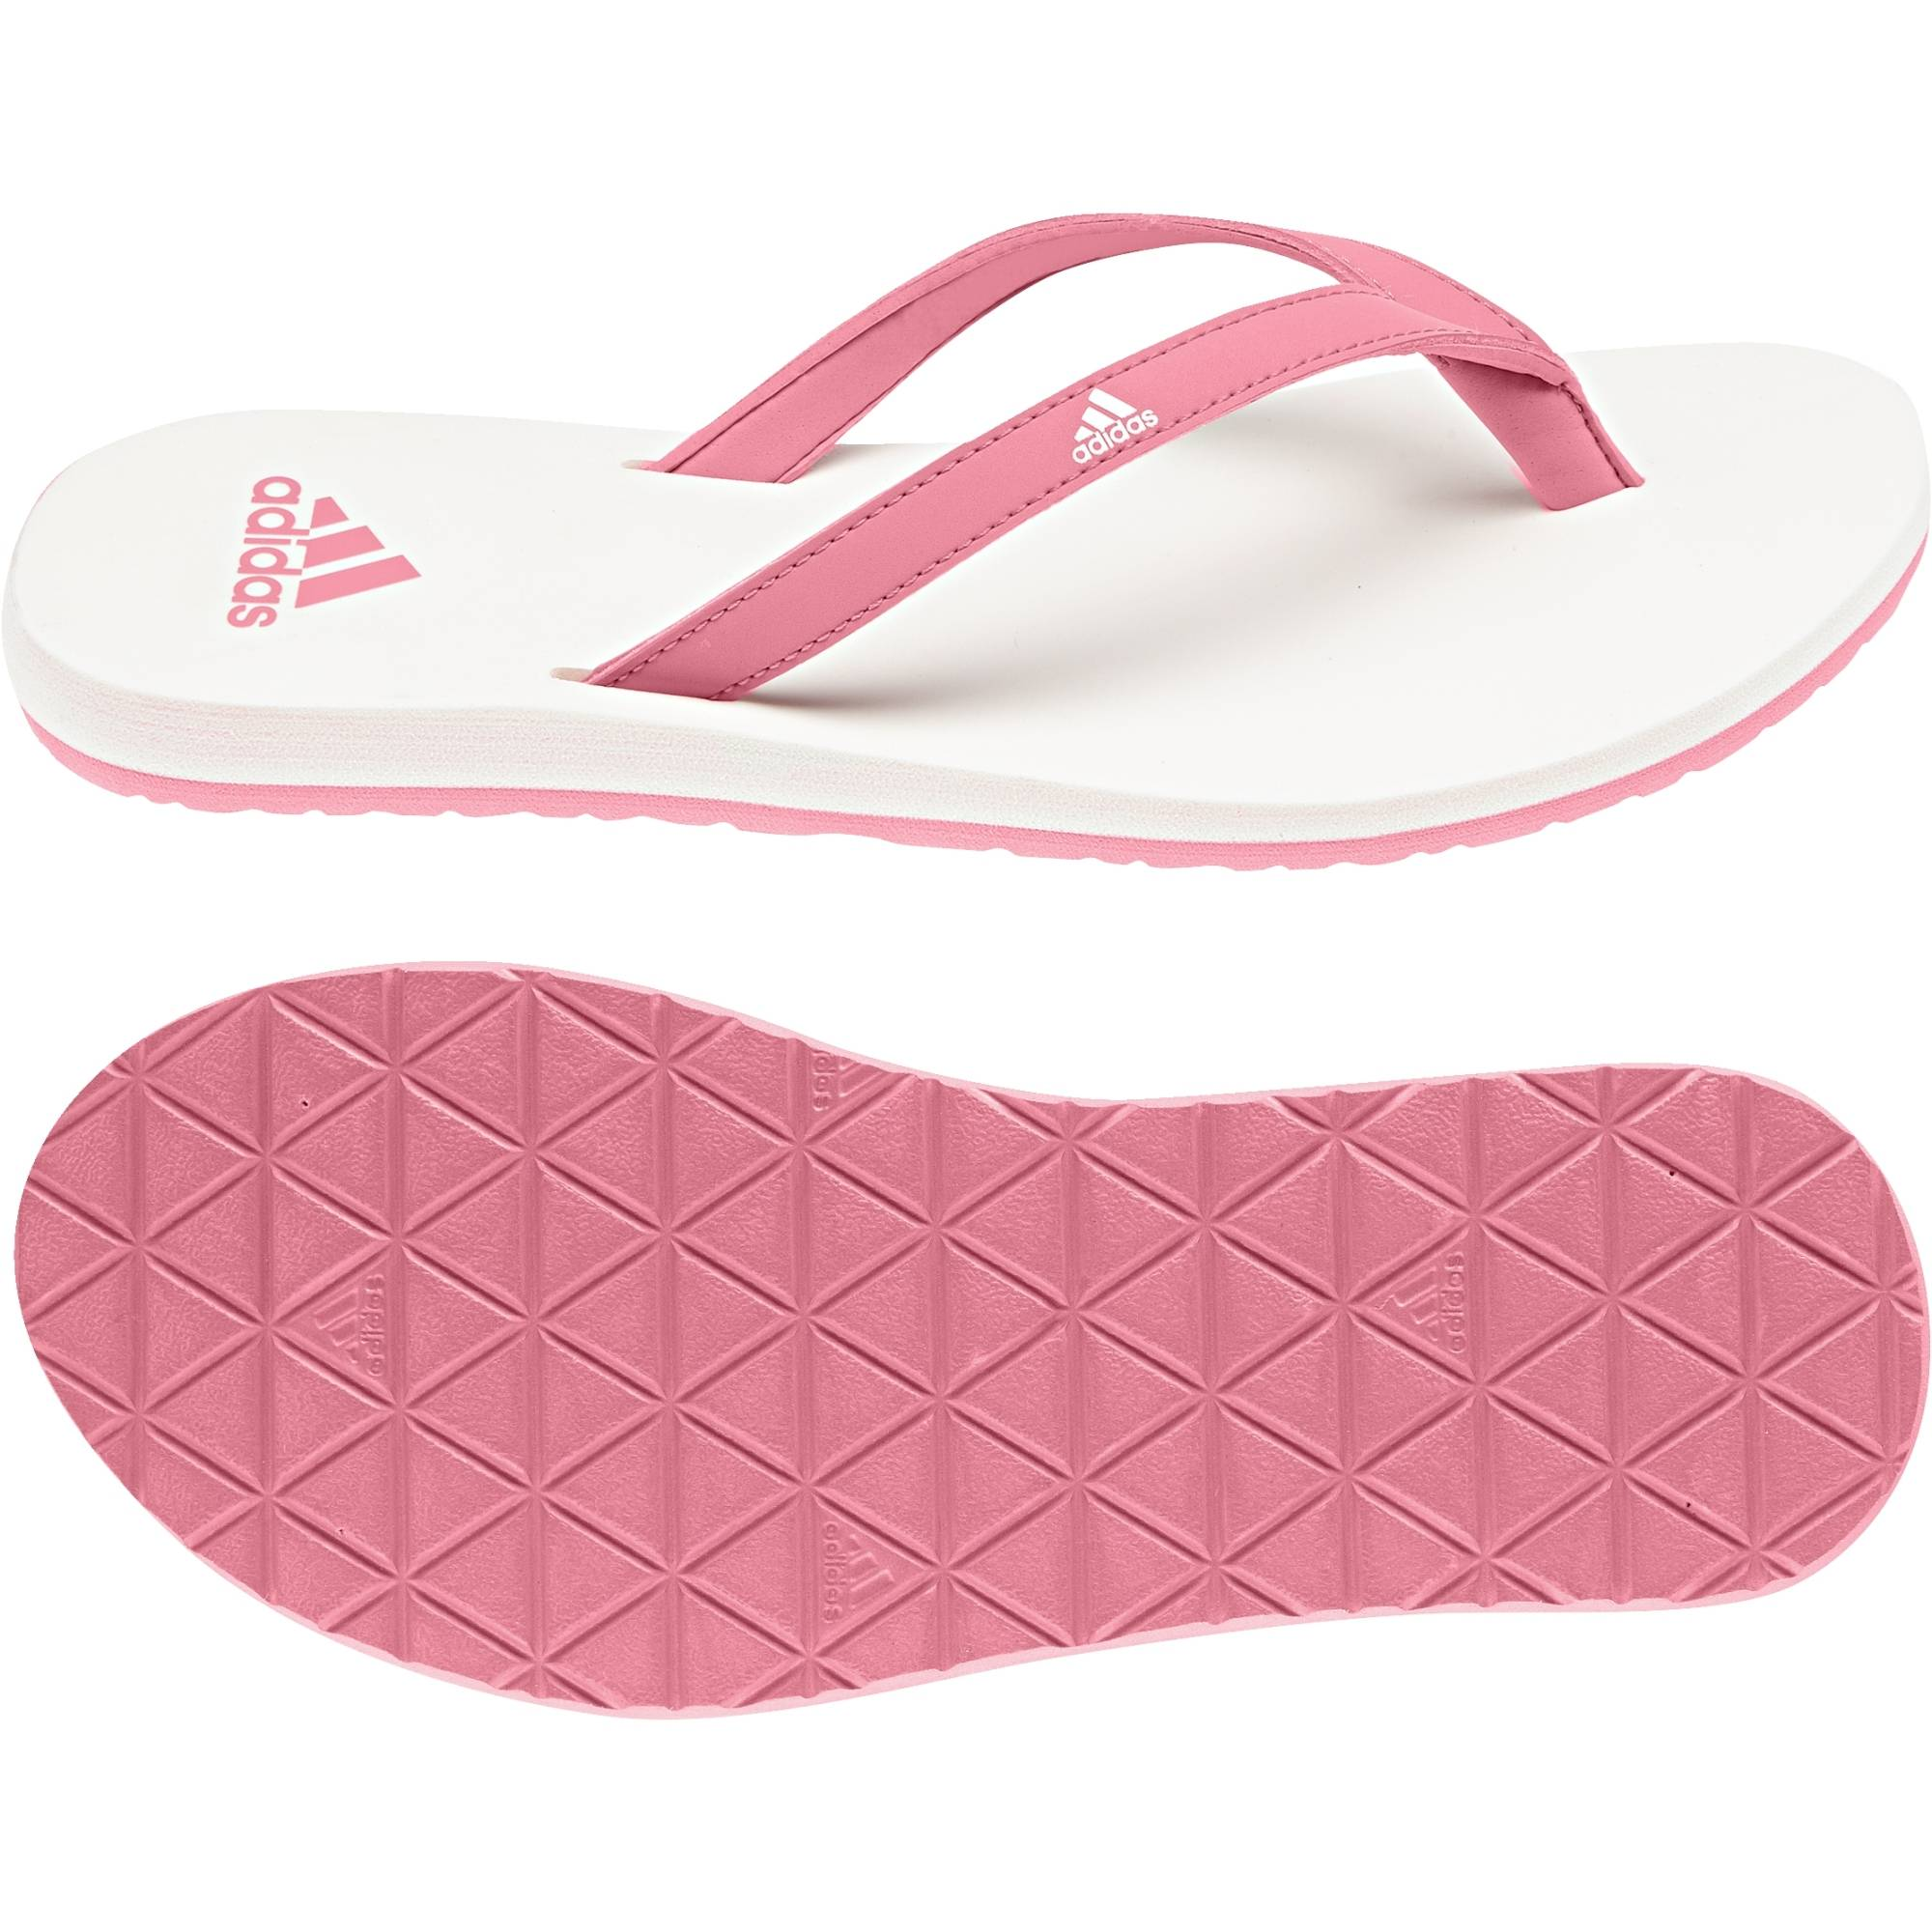 424a678a3a5c ADIDAS WOMEN SWIMMING EEZAY ESSENCE THONG FLIP FLOP SANDALS CG3556 ...